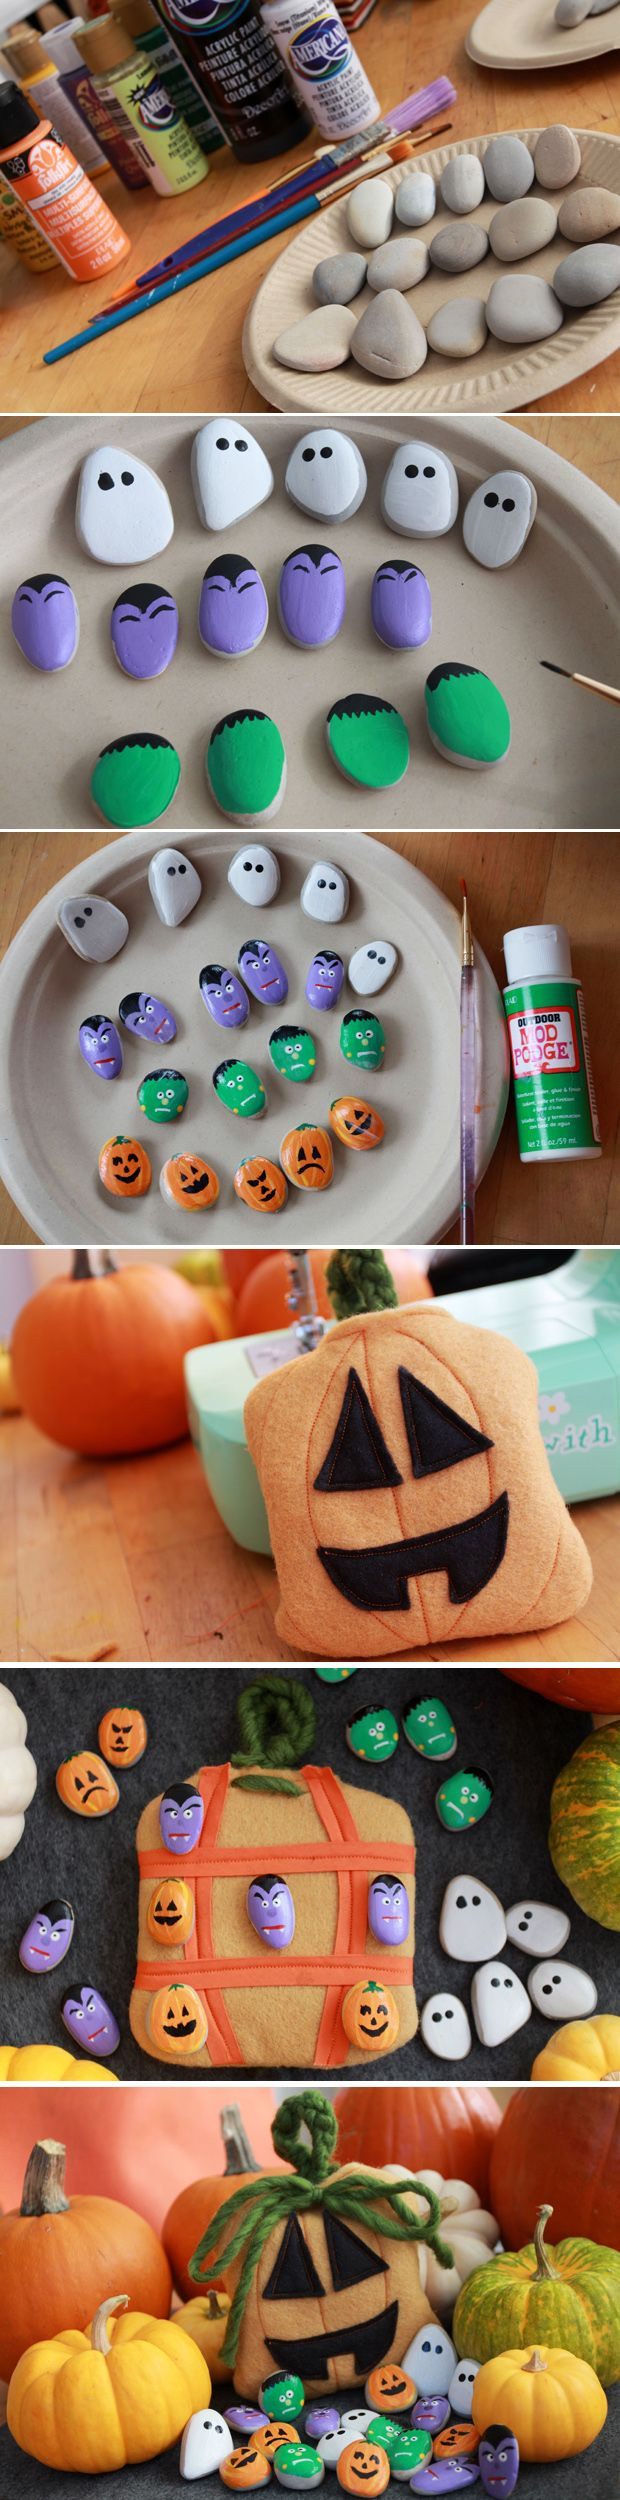 An adorable craft/game you can make and then play with the kids! Painted stones as tic-tac-toe figures in it's own simple-sew jack-o-lantern bag (that doubles as the game board on the flip side!). Spooktacular Halloween DIY: http://www.ehow.com/ehow-crafts/blog/make-a-spooky-tic-tac-toe-game-and-its-pumpkin-pouch/?utm_source=pinterest&utm_medium=fanpage&utm_content=blog